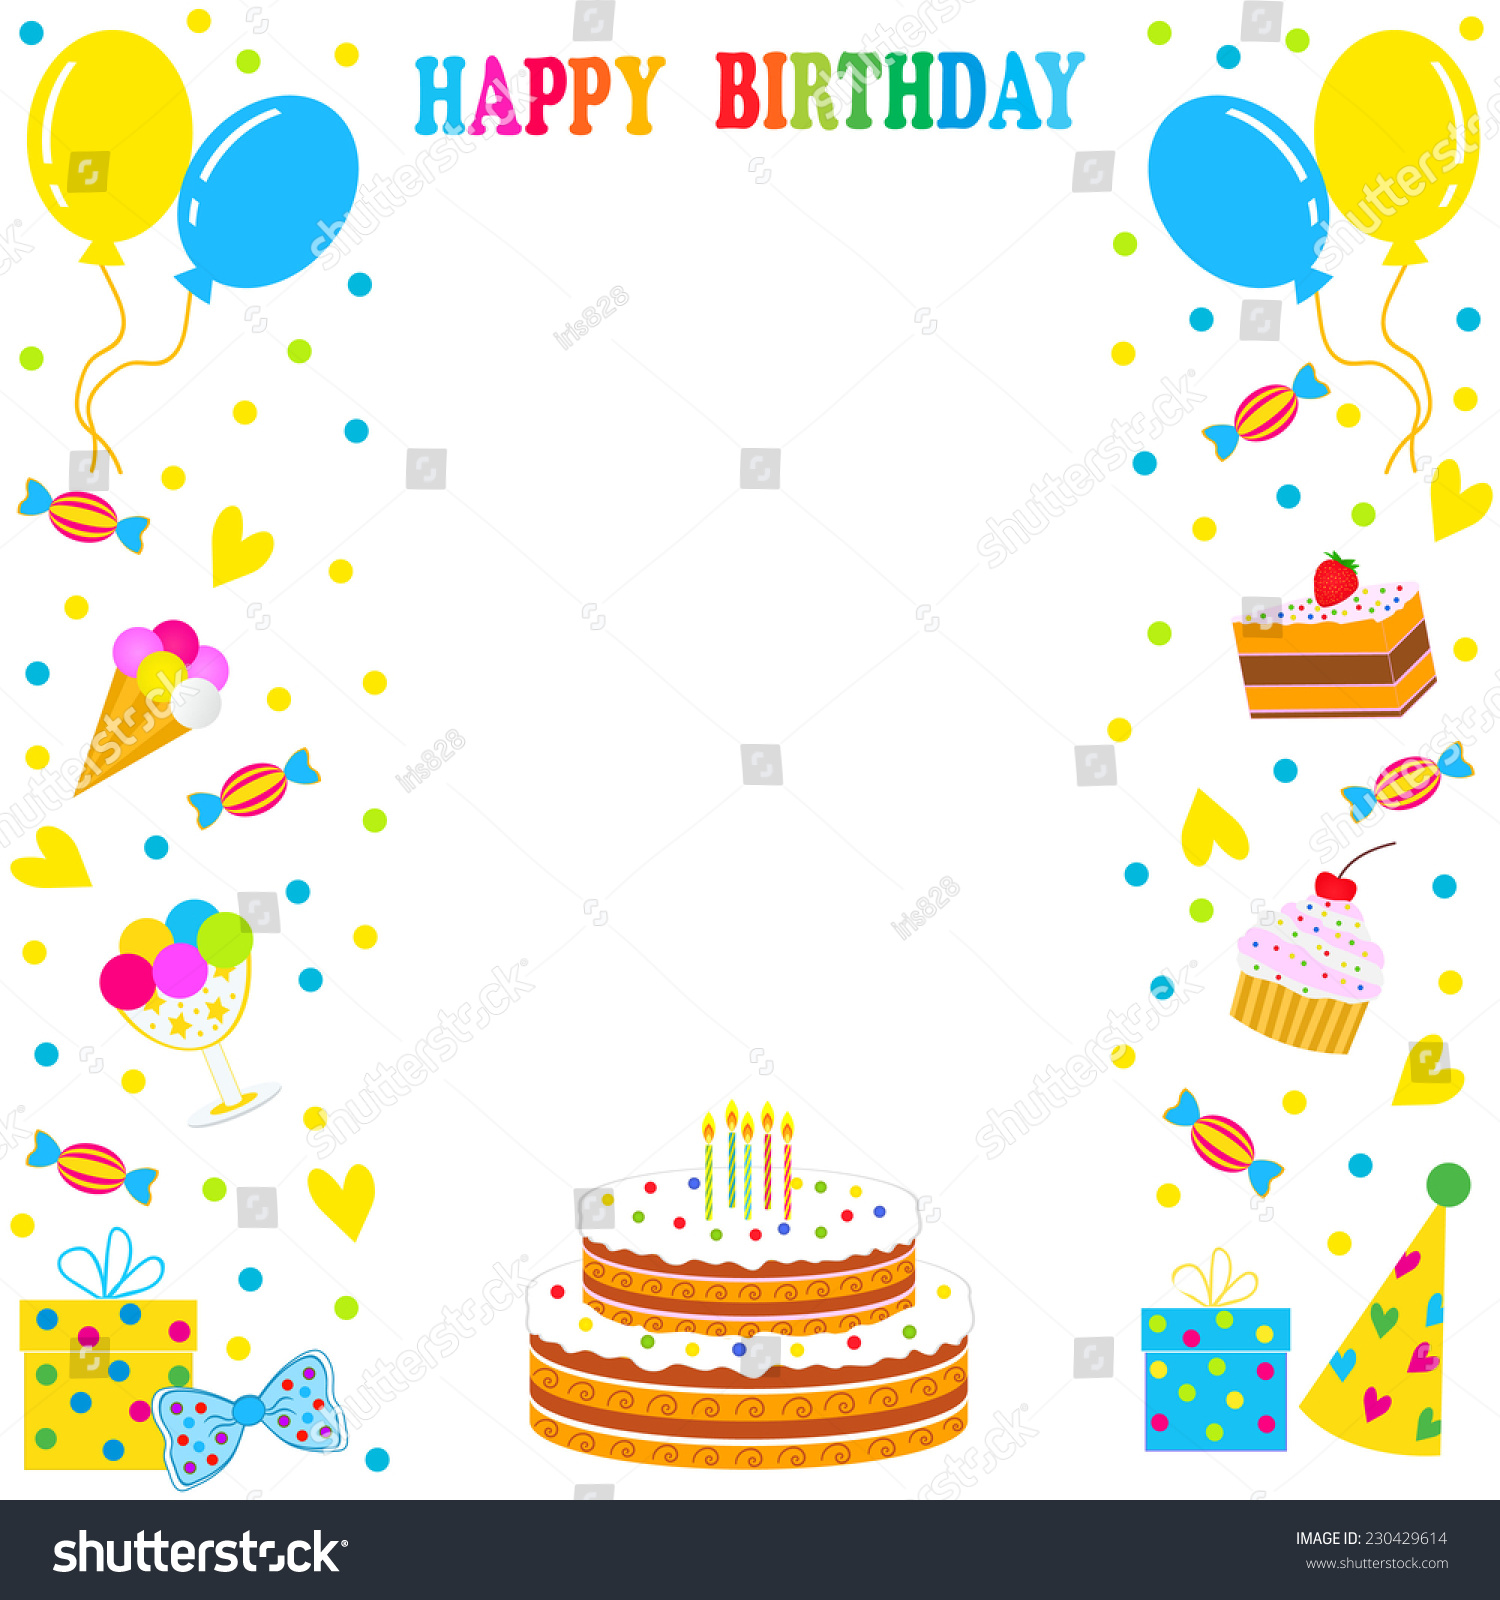 on the border birthday ; stock-vector--birthday-frame-border-sweets-balloons-cake-on-a-white-background-vector-230429614